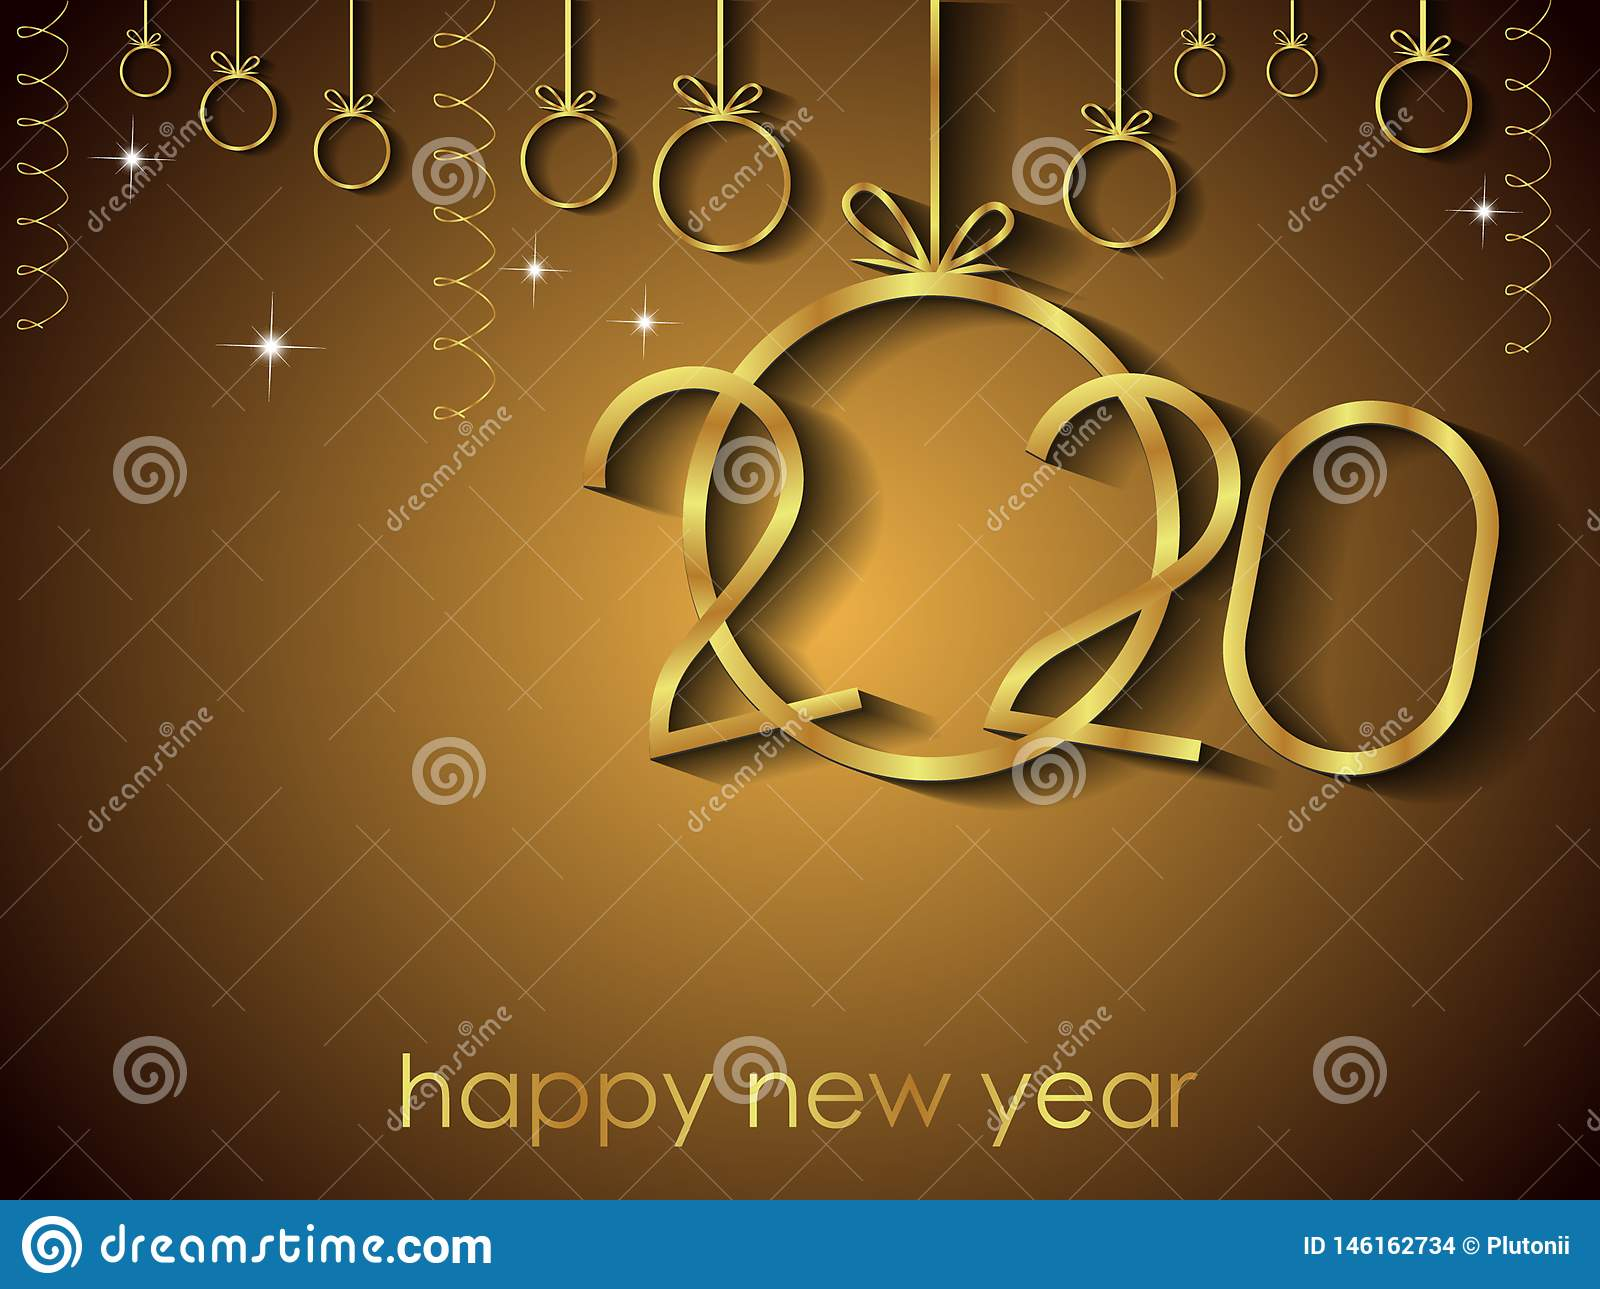 1600x1289 - Happy New Year Backgrounds 45